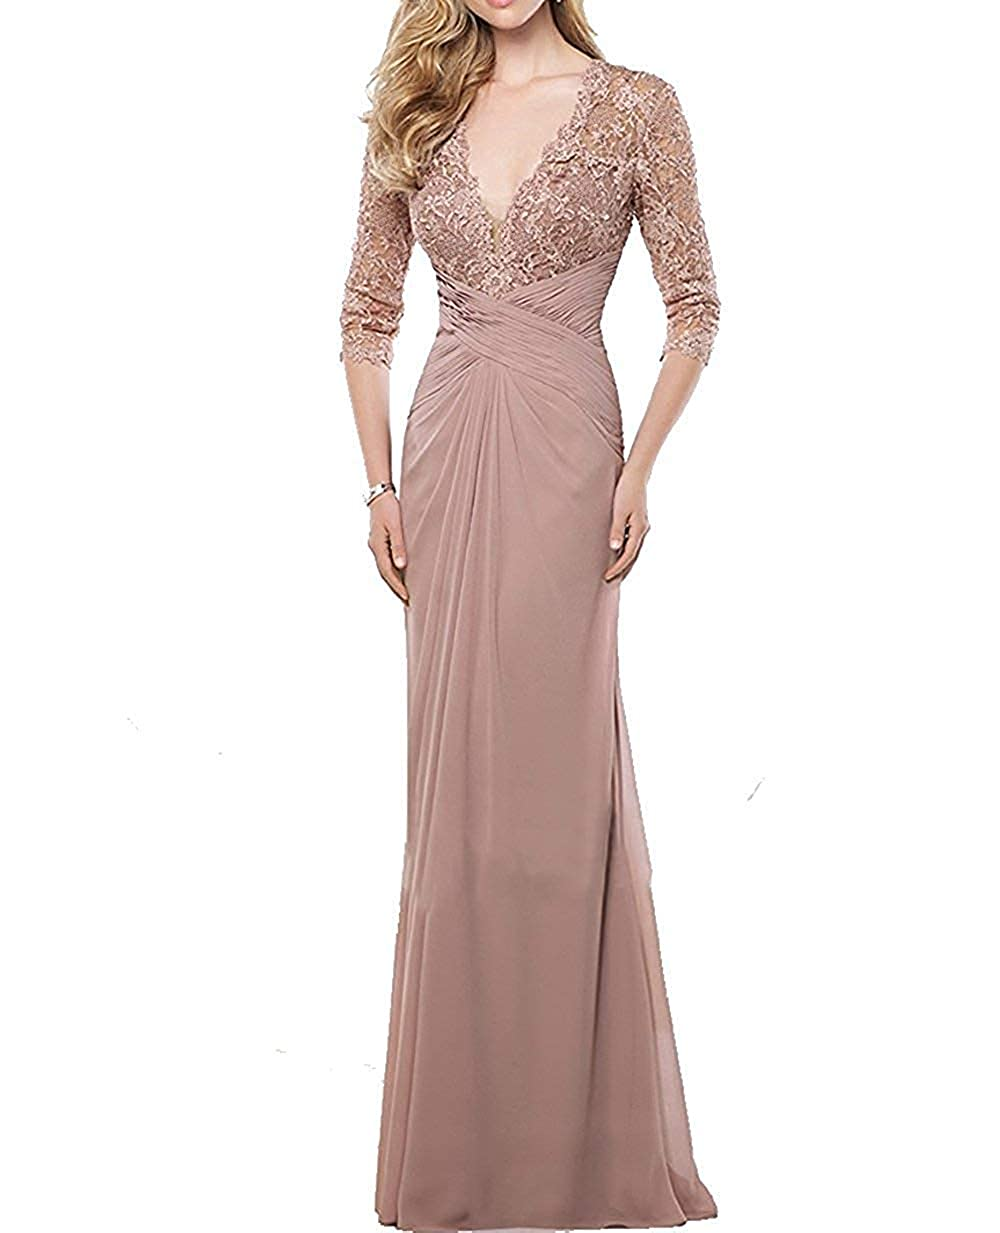 bluesh Mother of The Bride Dresses with Long Sleeves Mothers Bride Dress Formal Gowns Evening Dresses